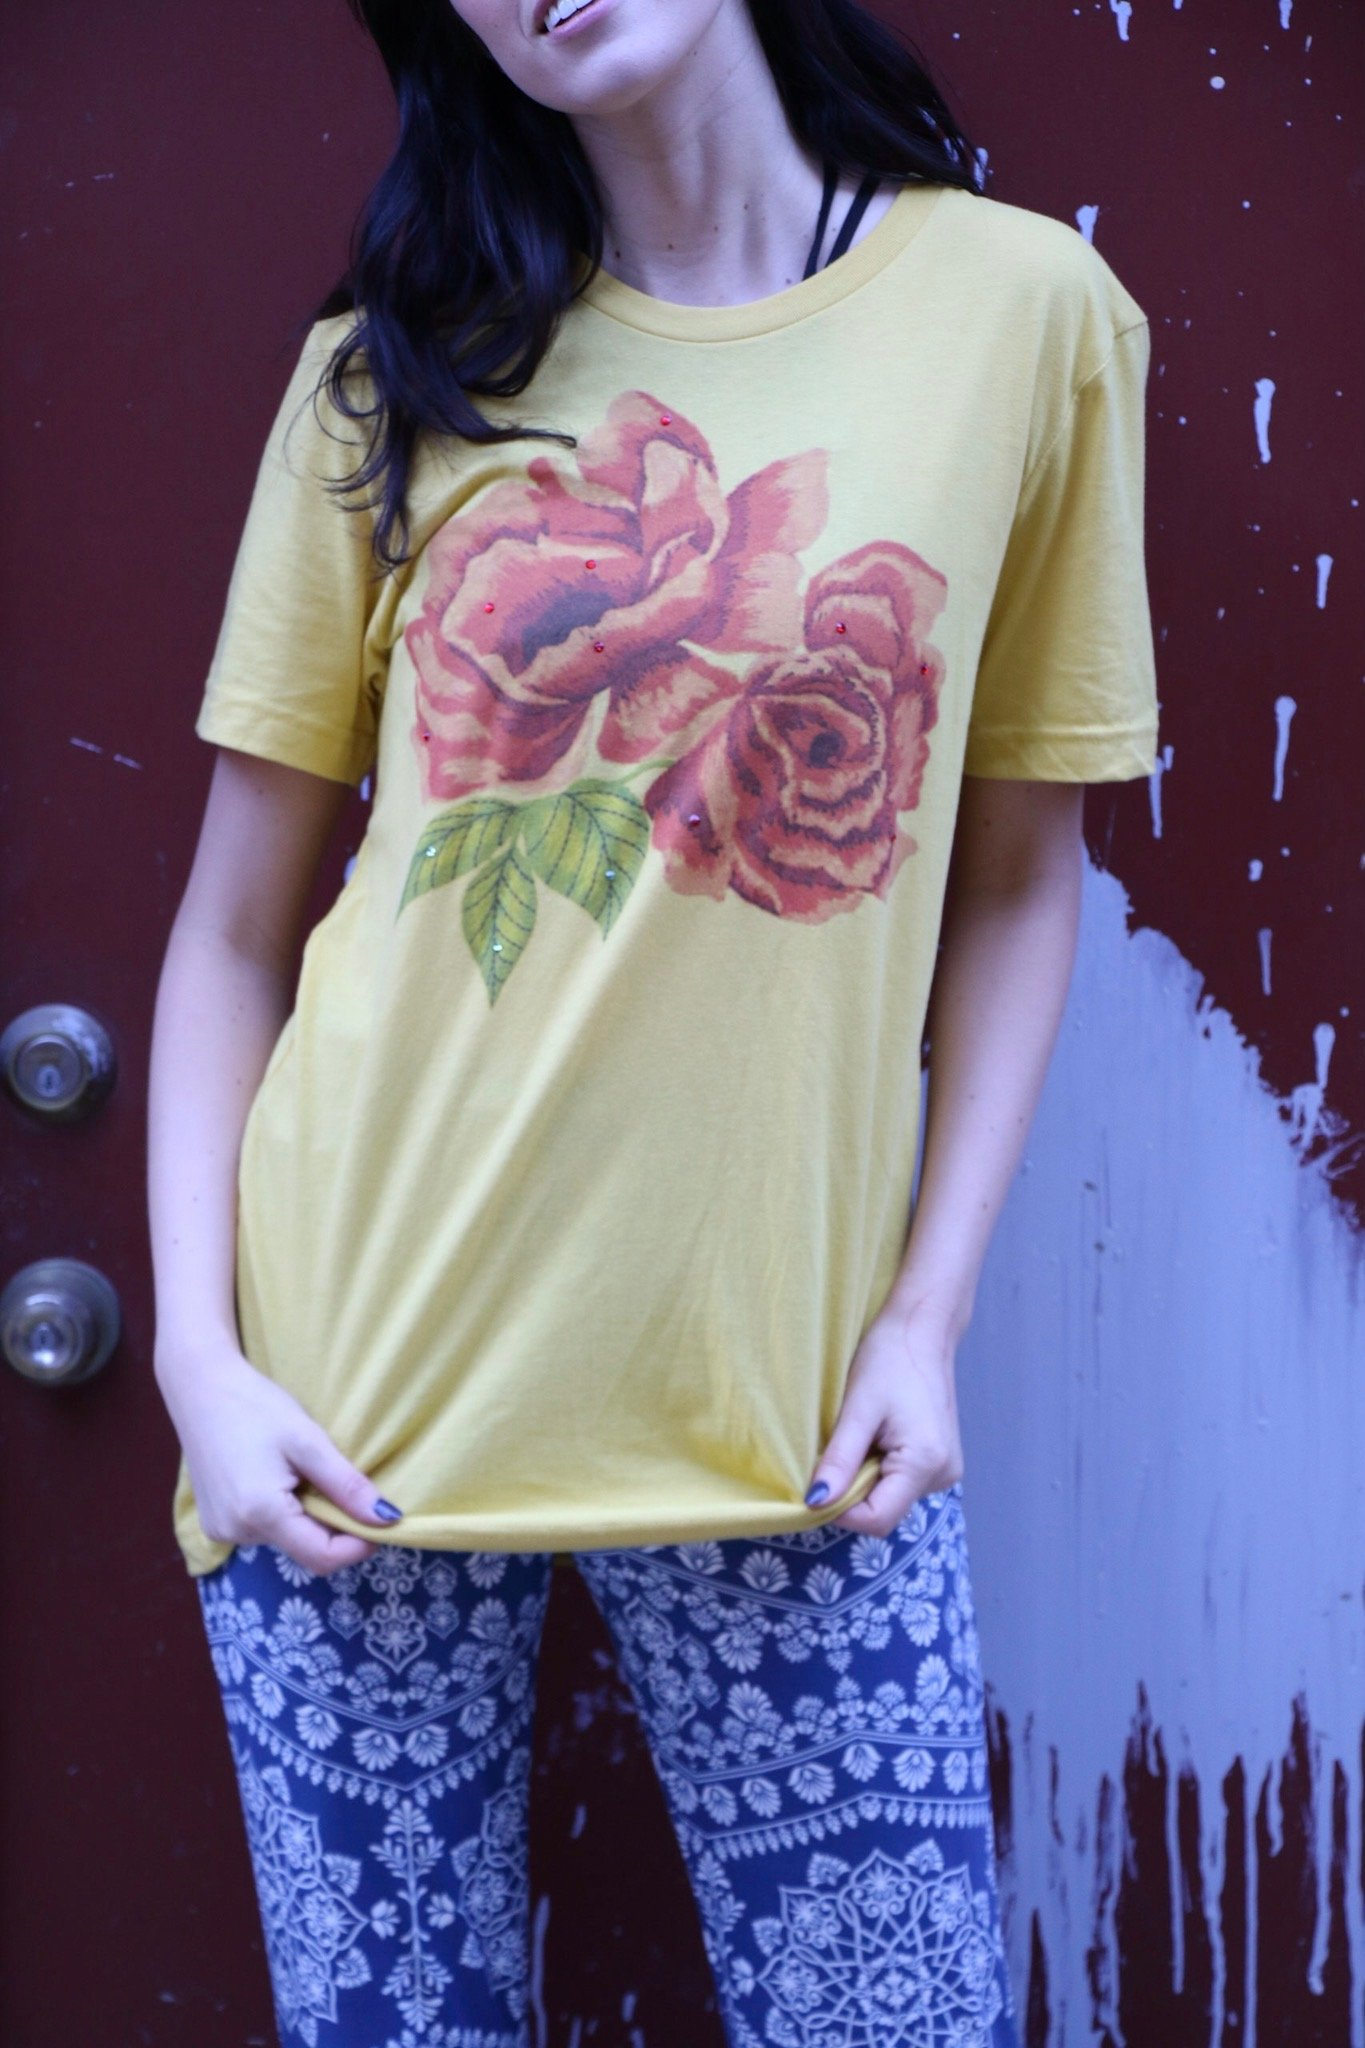 Embroidered Roses on Mustard Tee